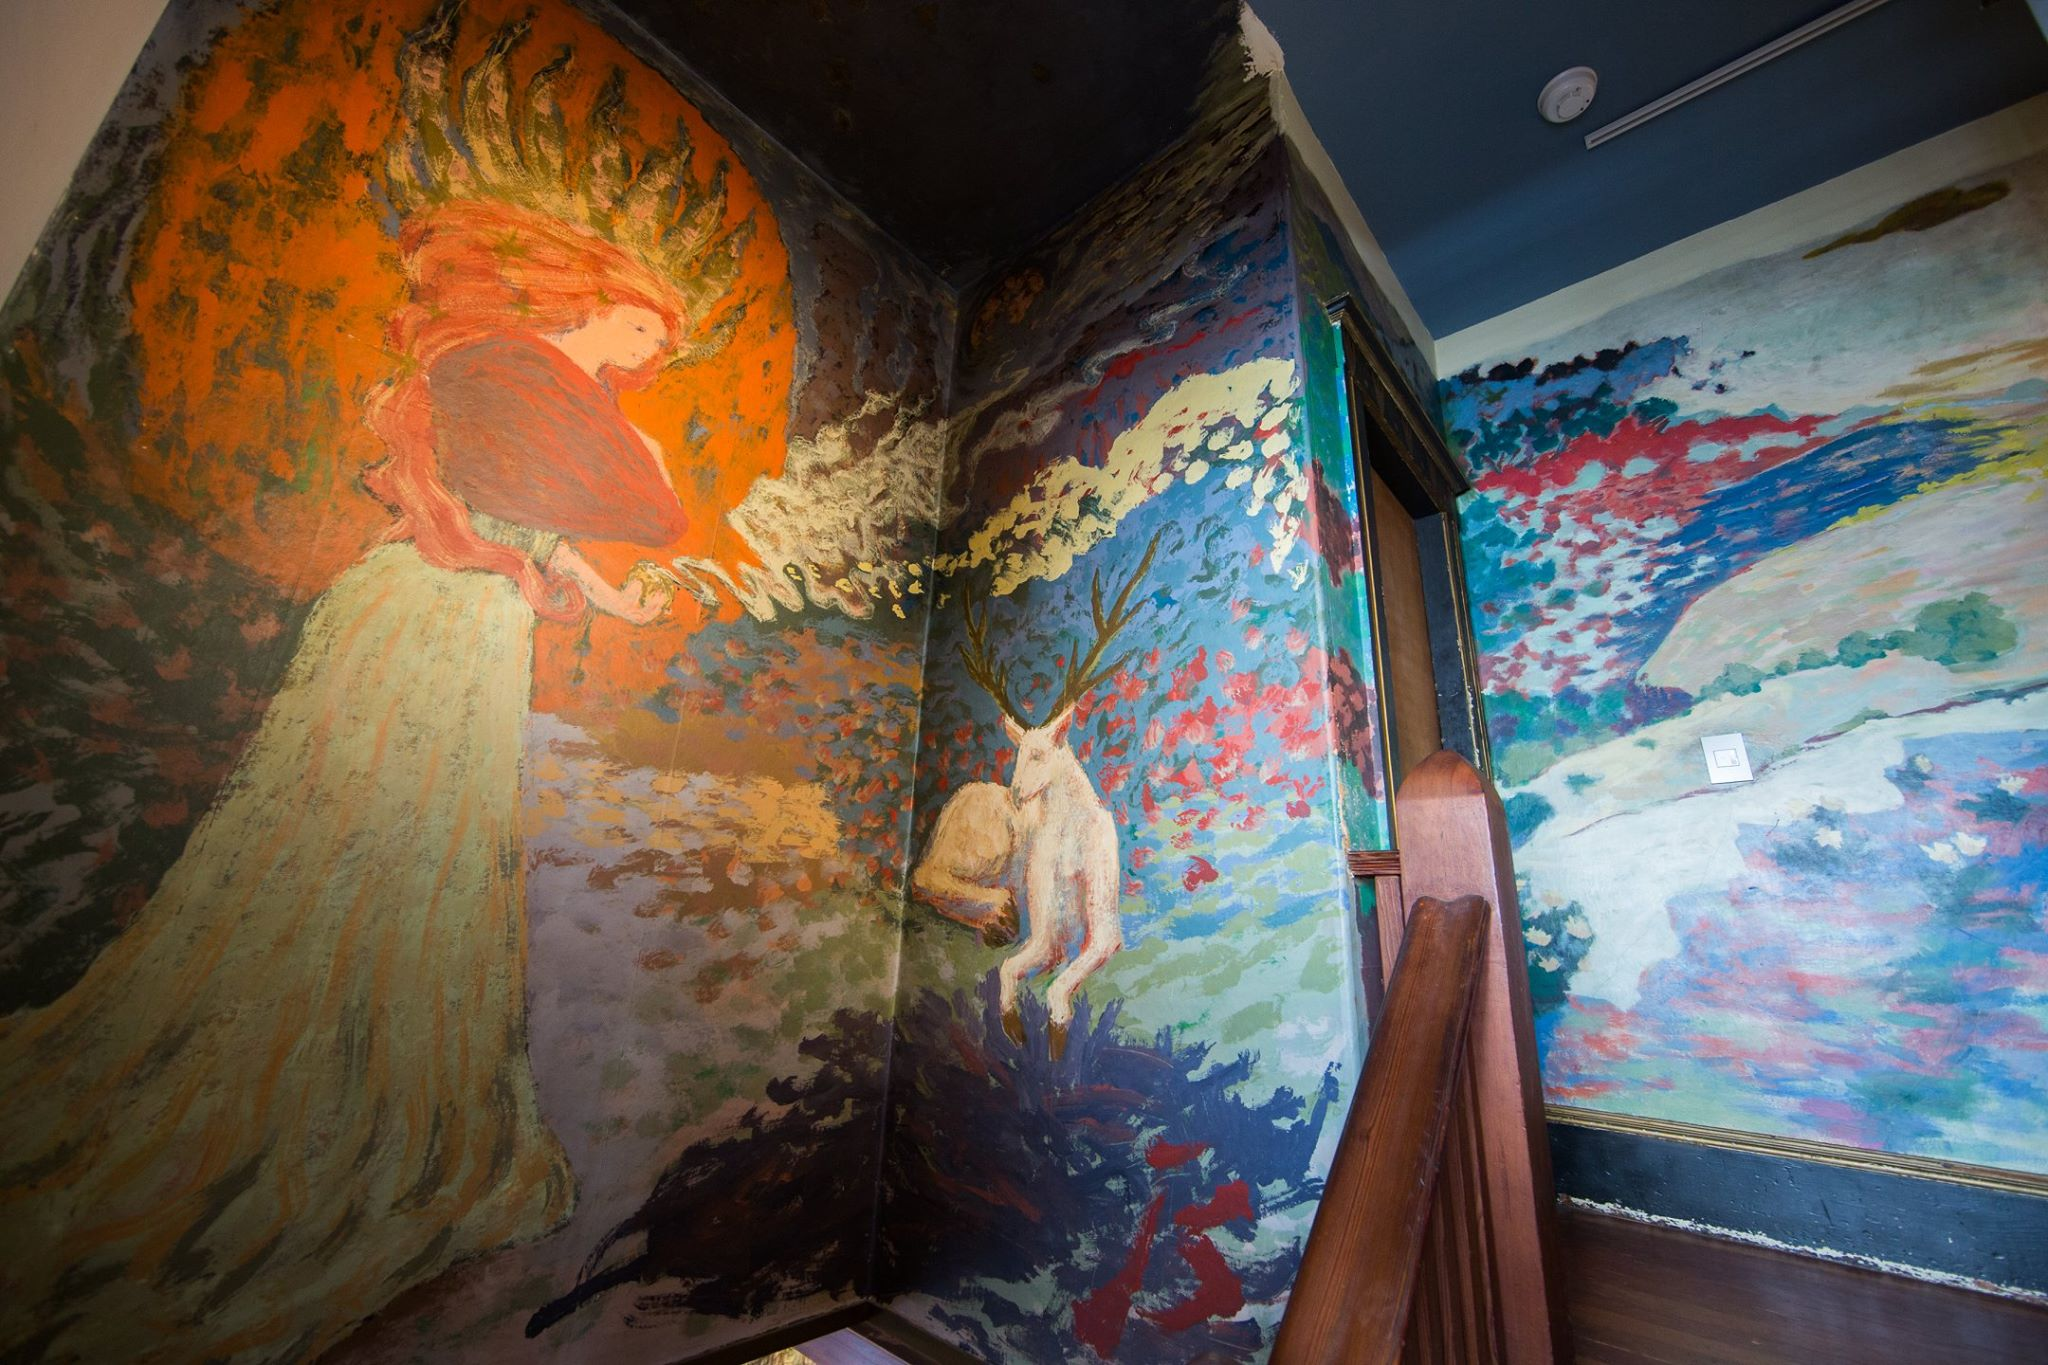 Hallway mural by Jess picturing a deity with her hair on fire, a stag and a mystical medieval romantic fantasy world that continues down the corridor.